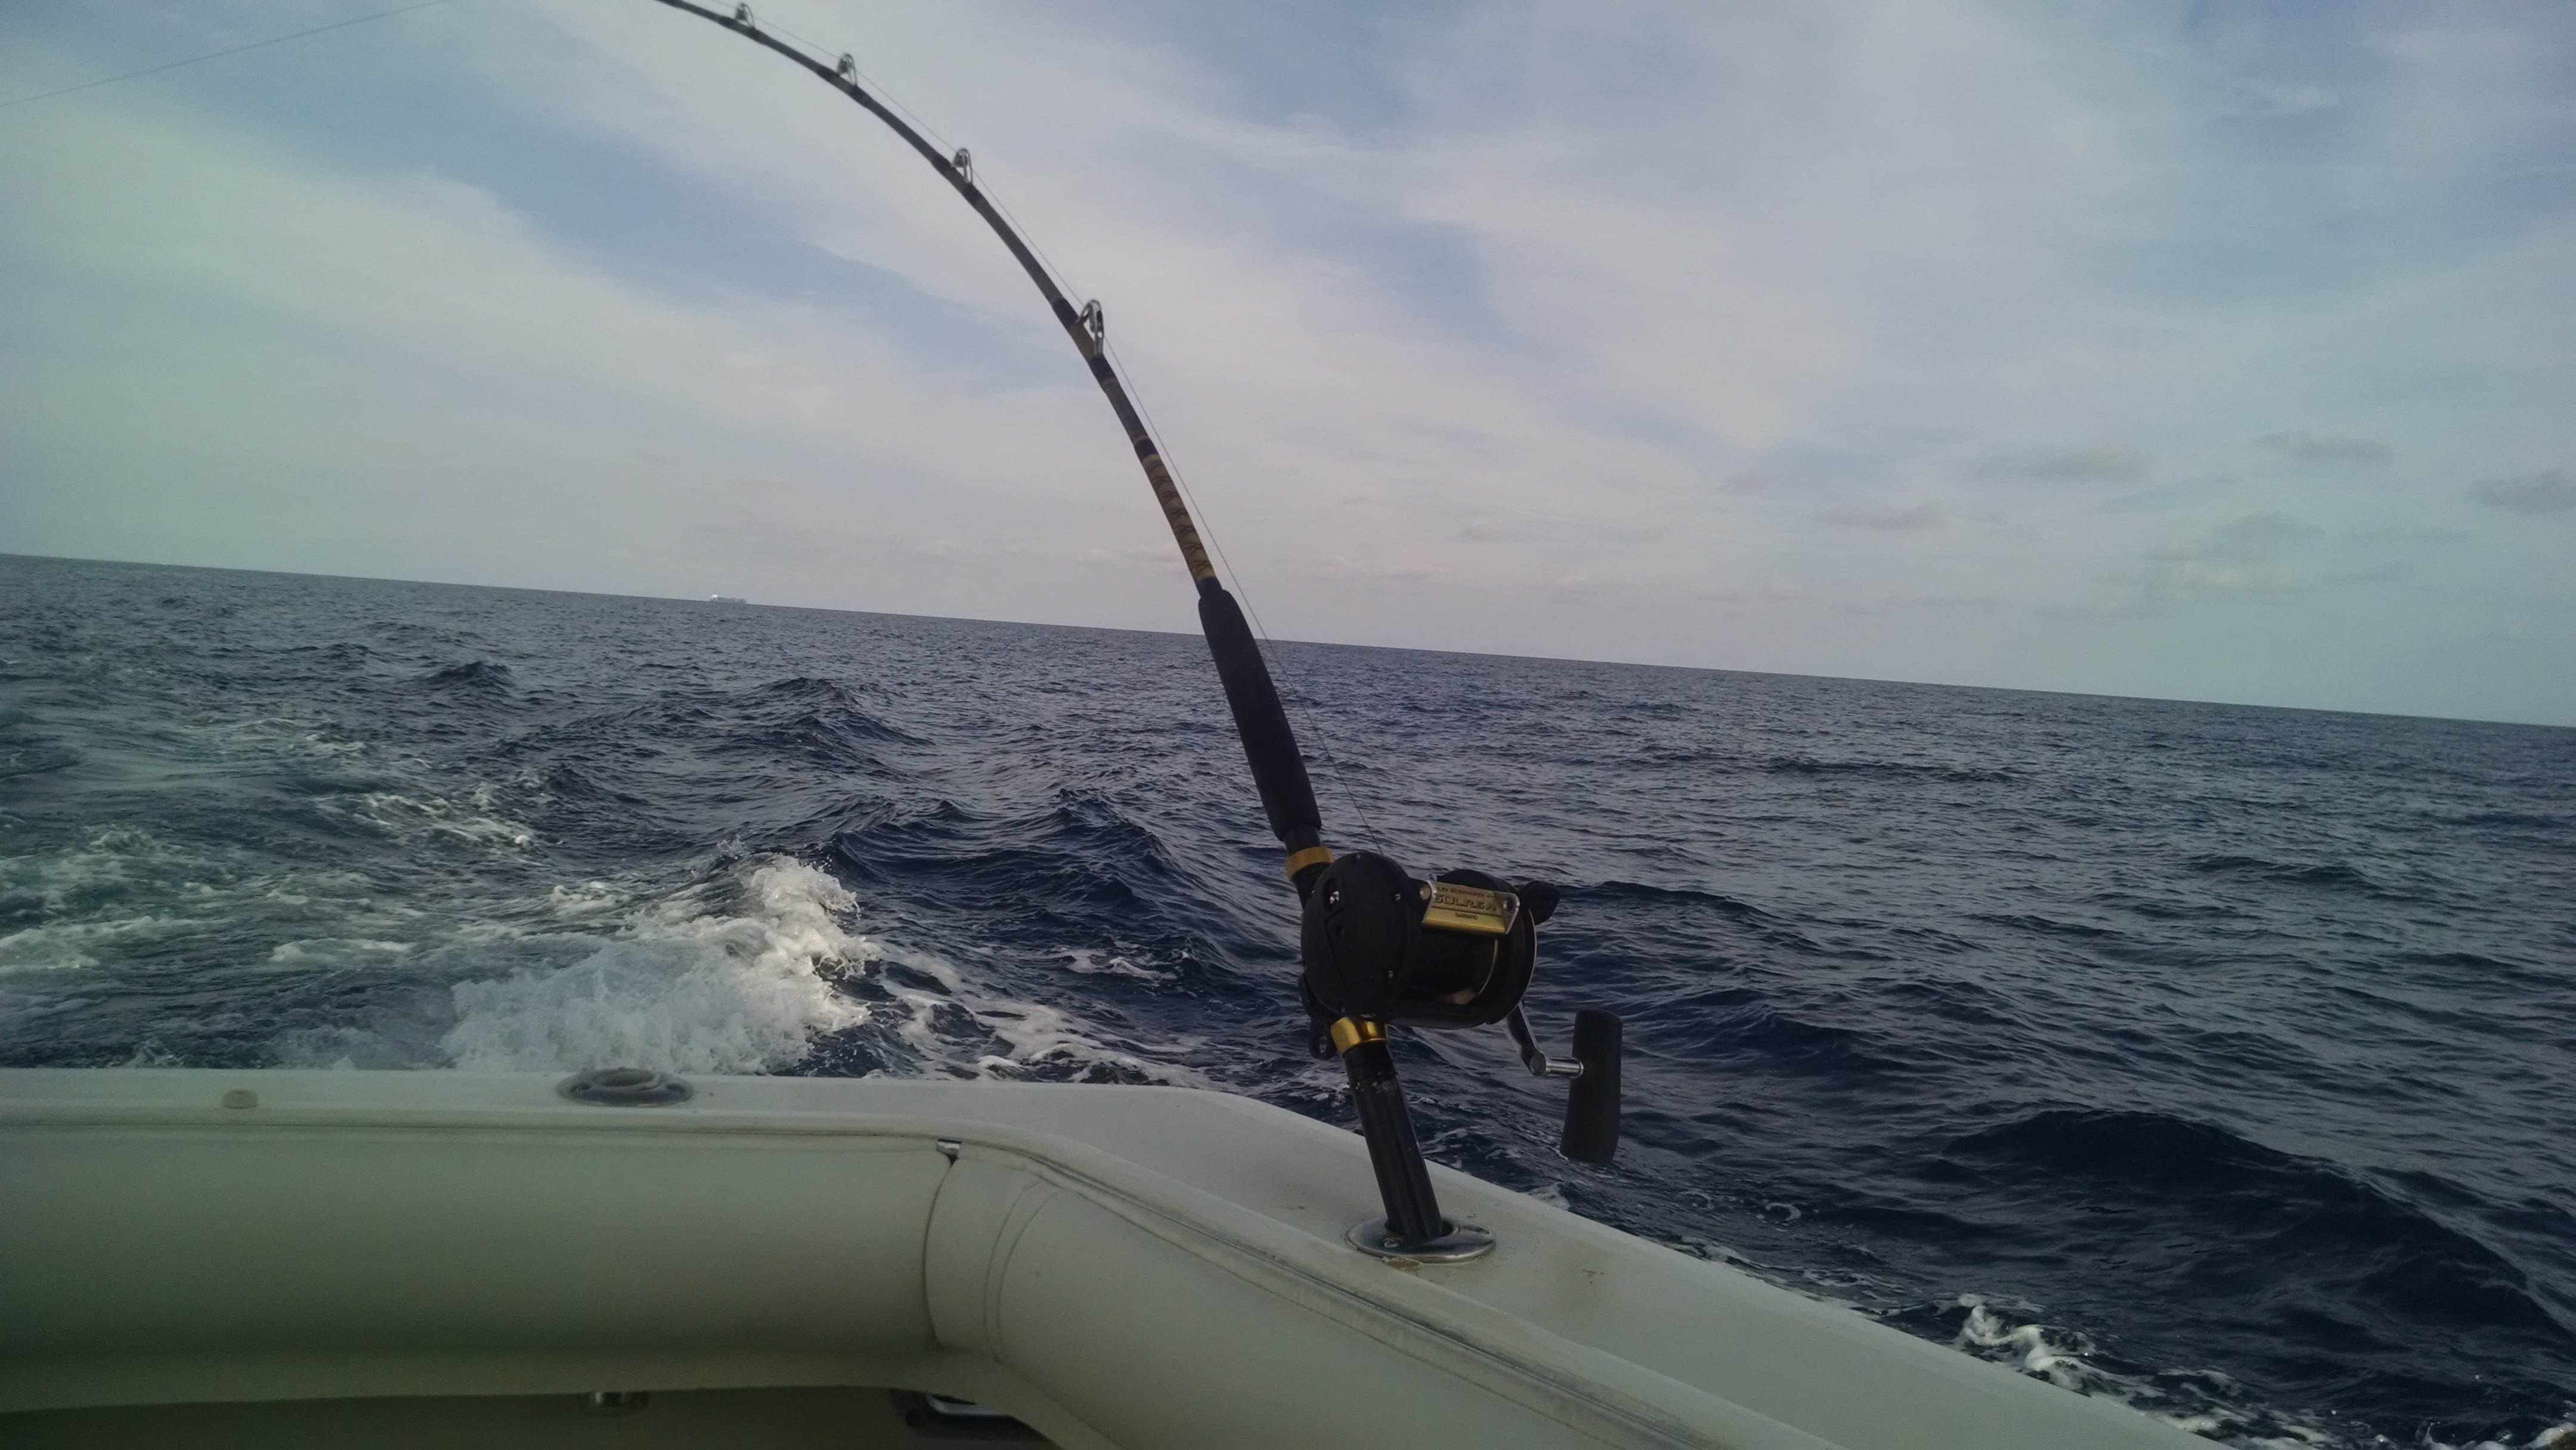 Bolo sportsfishing charters south florida finds for Deerfield beach fishing charter